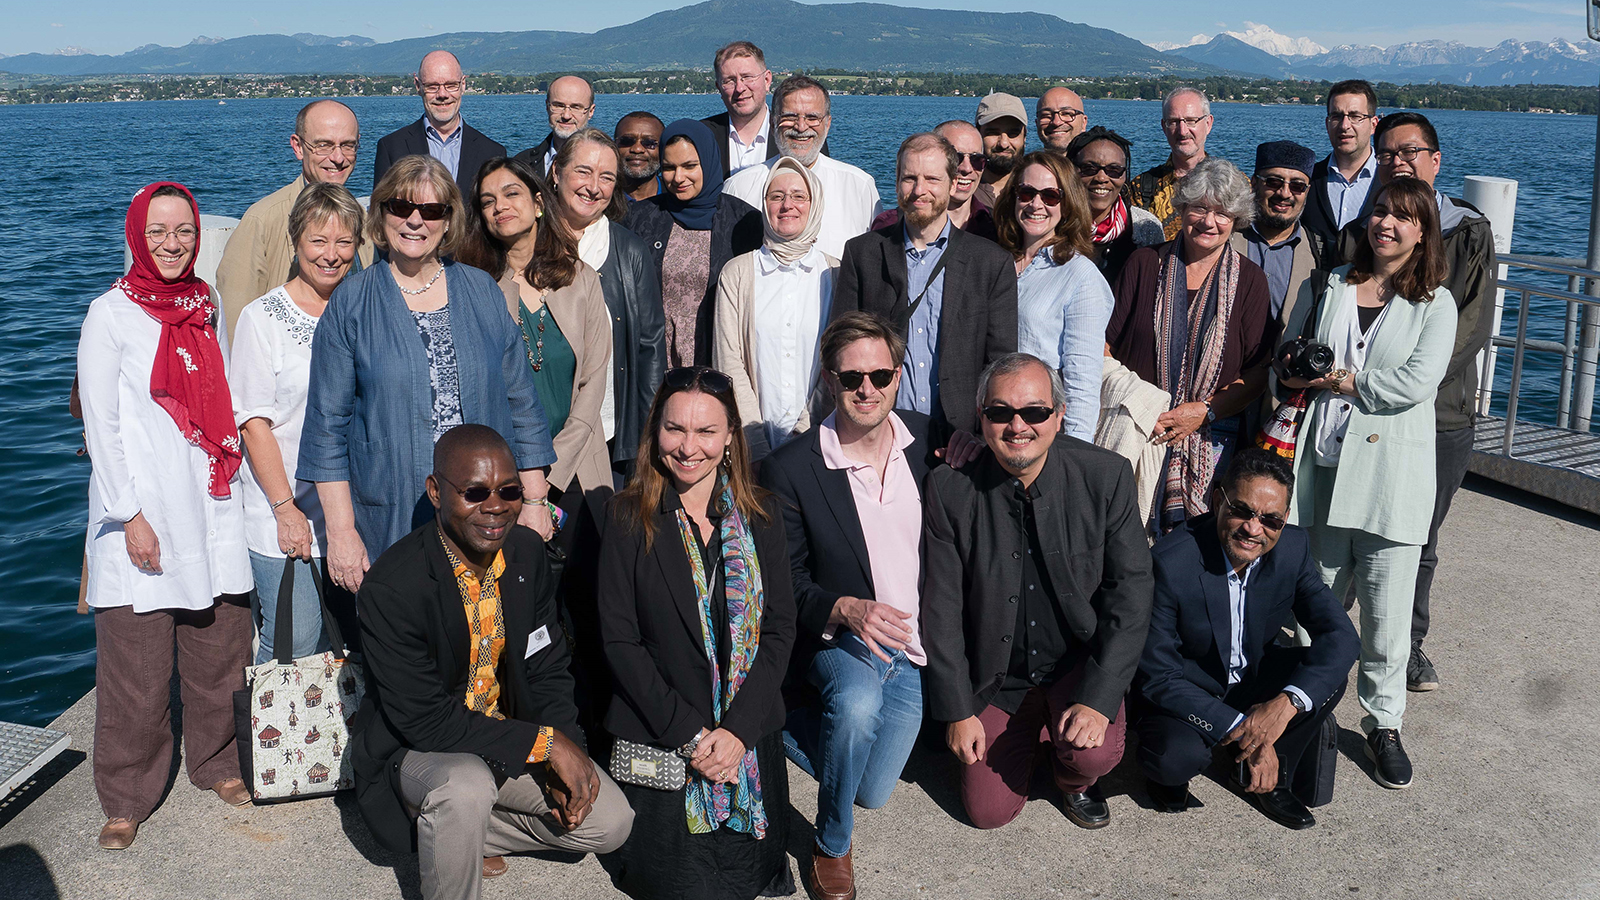 Building Bridges Seminar 2019 participants at Lake Geneva in Switzerland